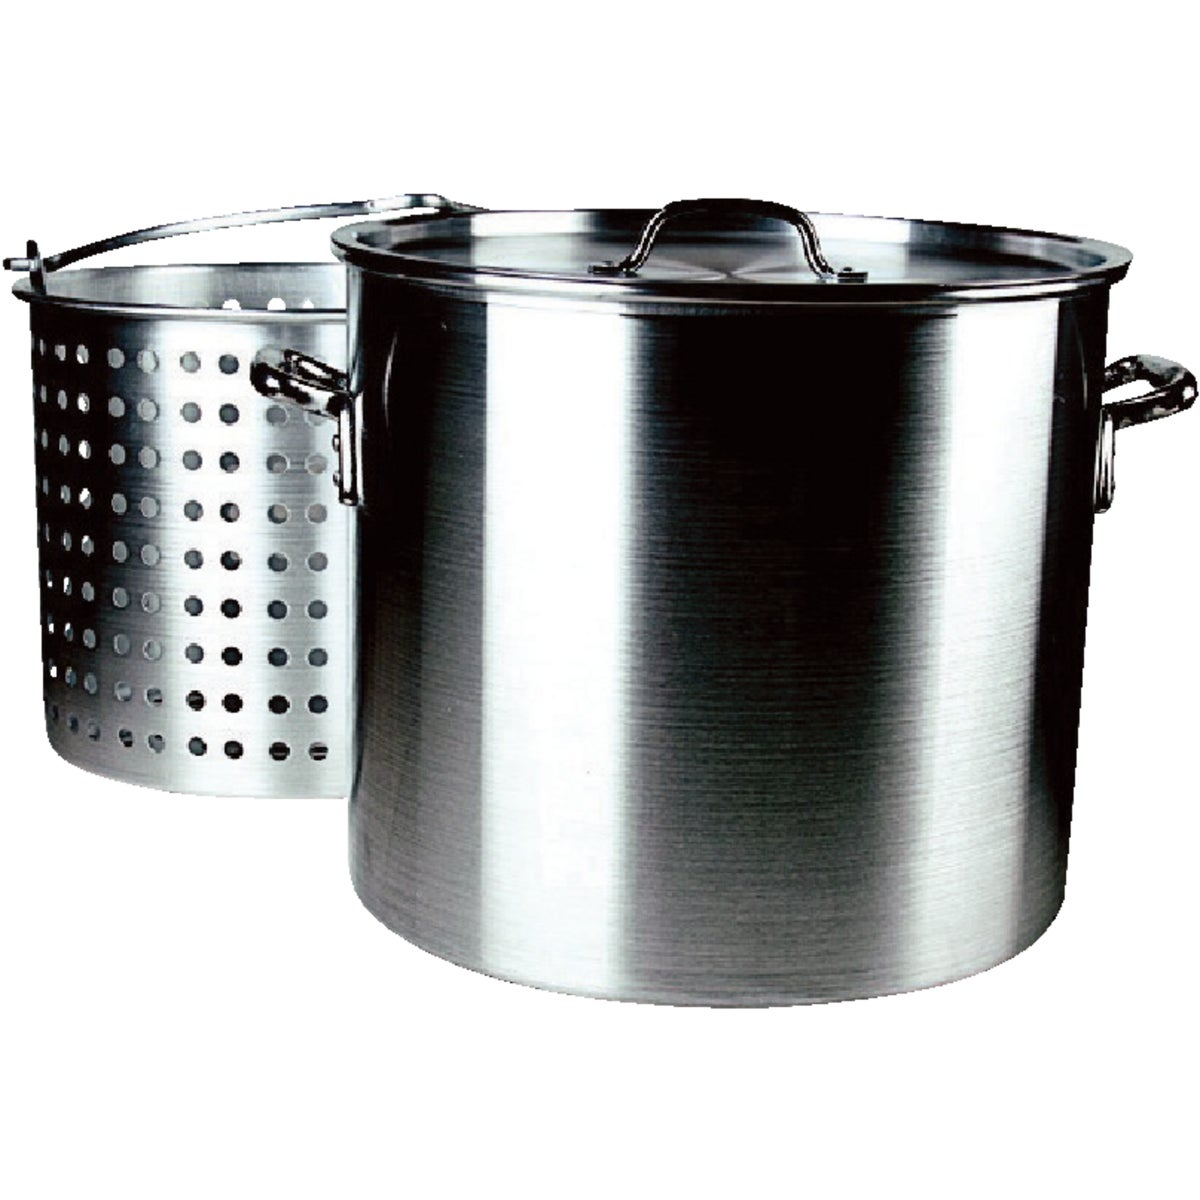 60QT ALUMINUM POT - WG-RPB1060 by Kamach LLC